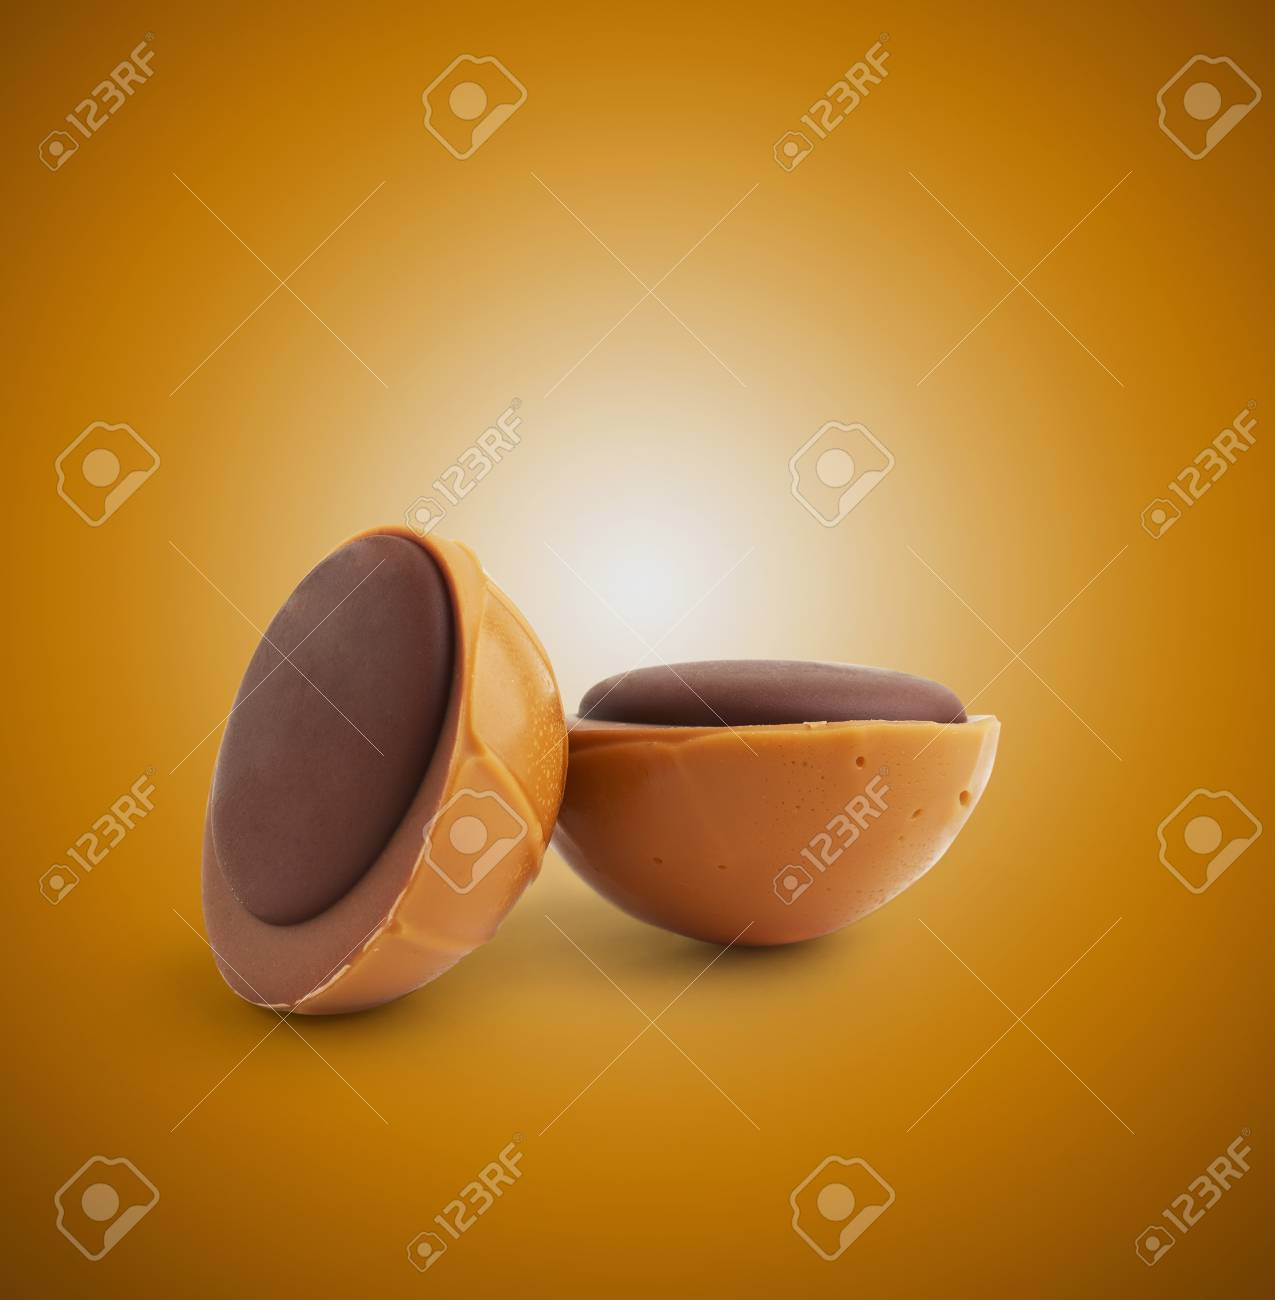 Chocolate Caramel Presented with space for text or design Stock Photo - 16564187